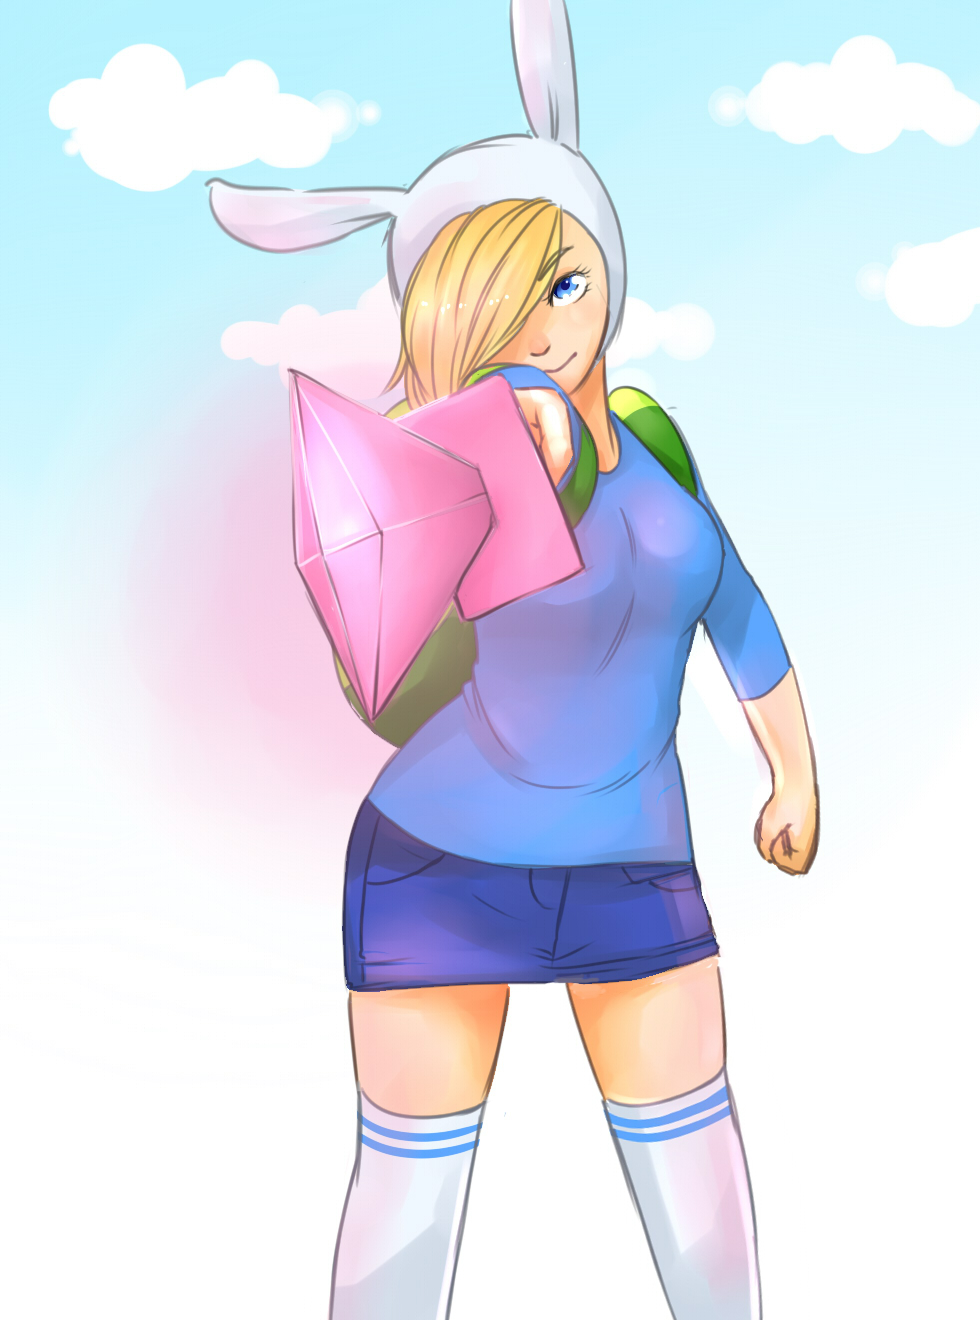 Adventure Time Finn And Fionna fionna the human girl - adventure time - image #1410598